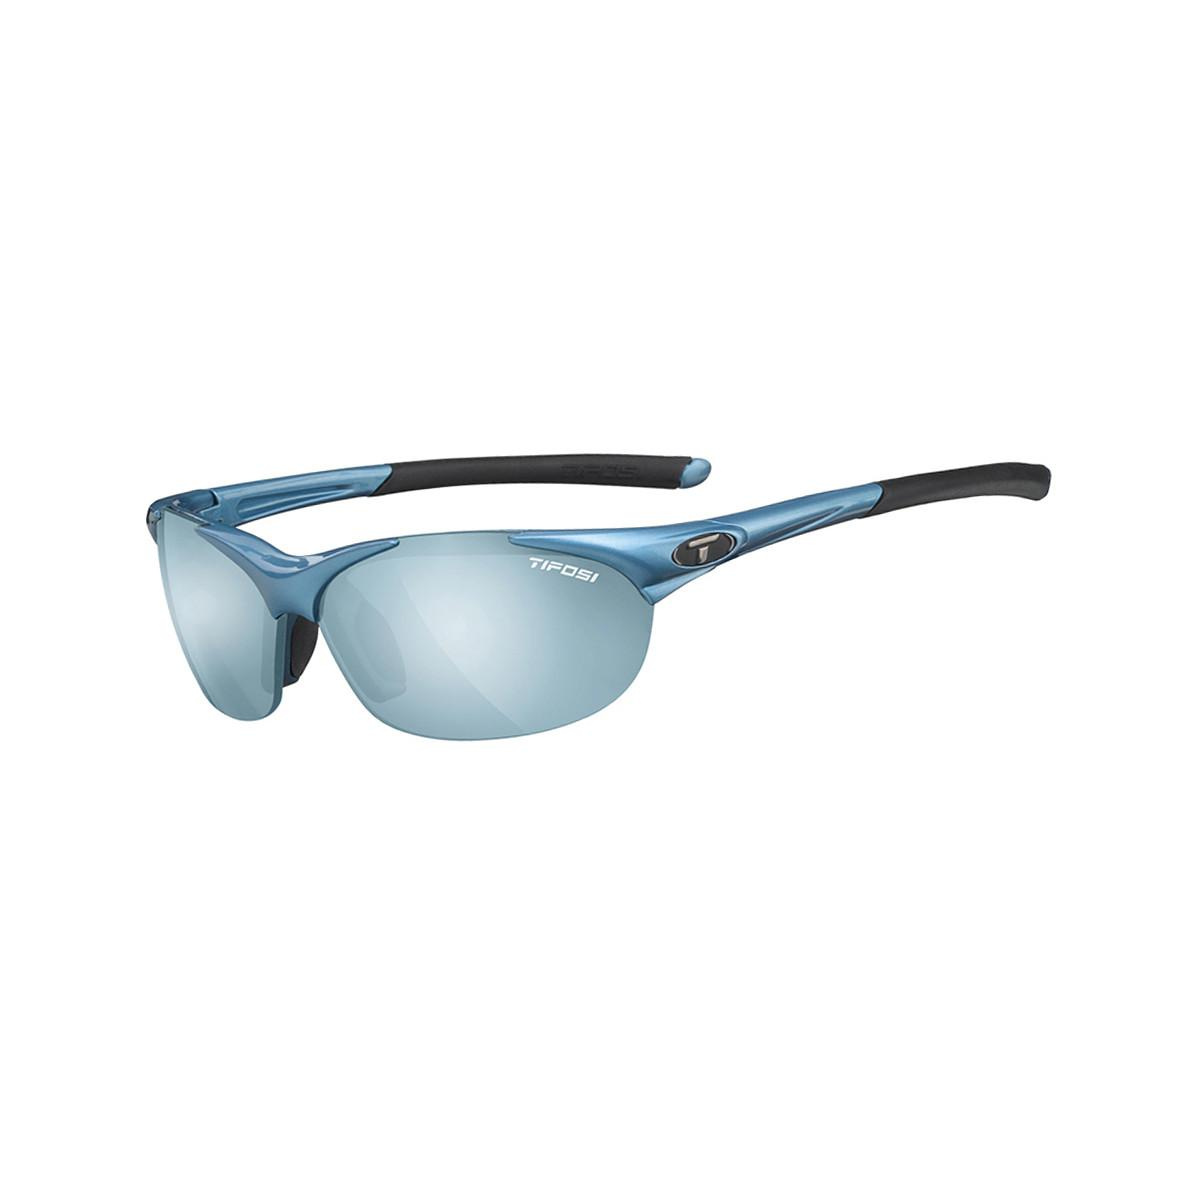 0ac9ce23bea Lyst - Tifosi Optics Wisp Sunglasses in Blue